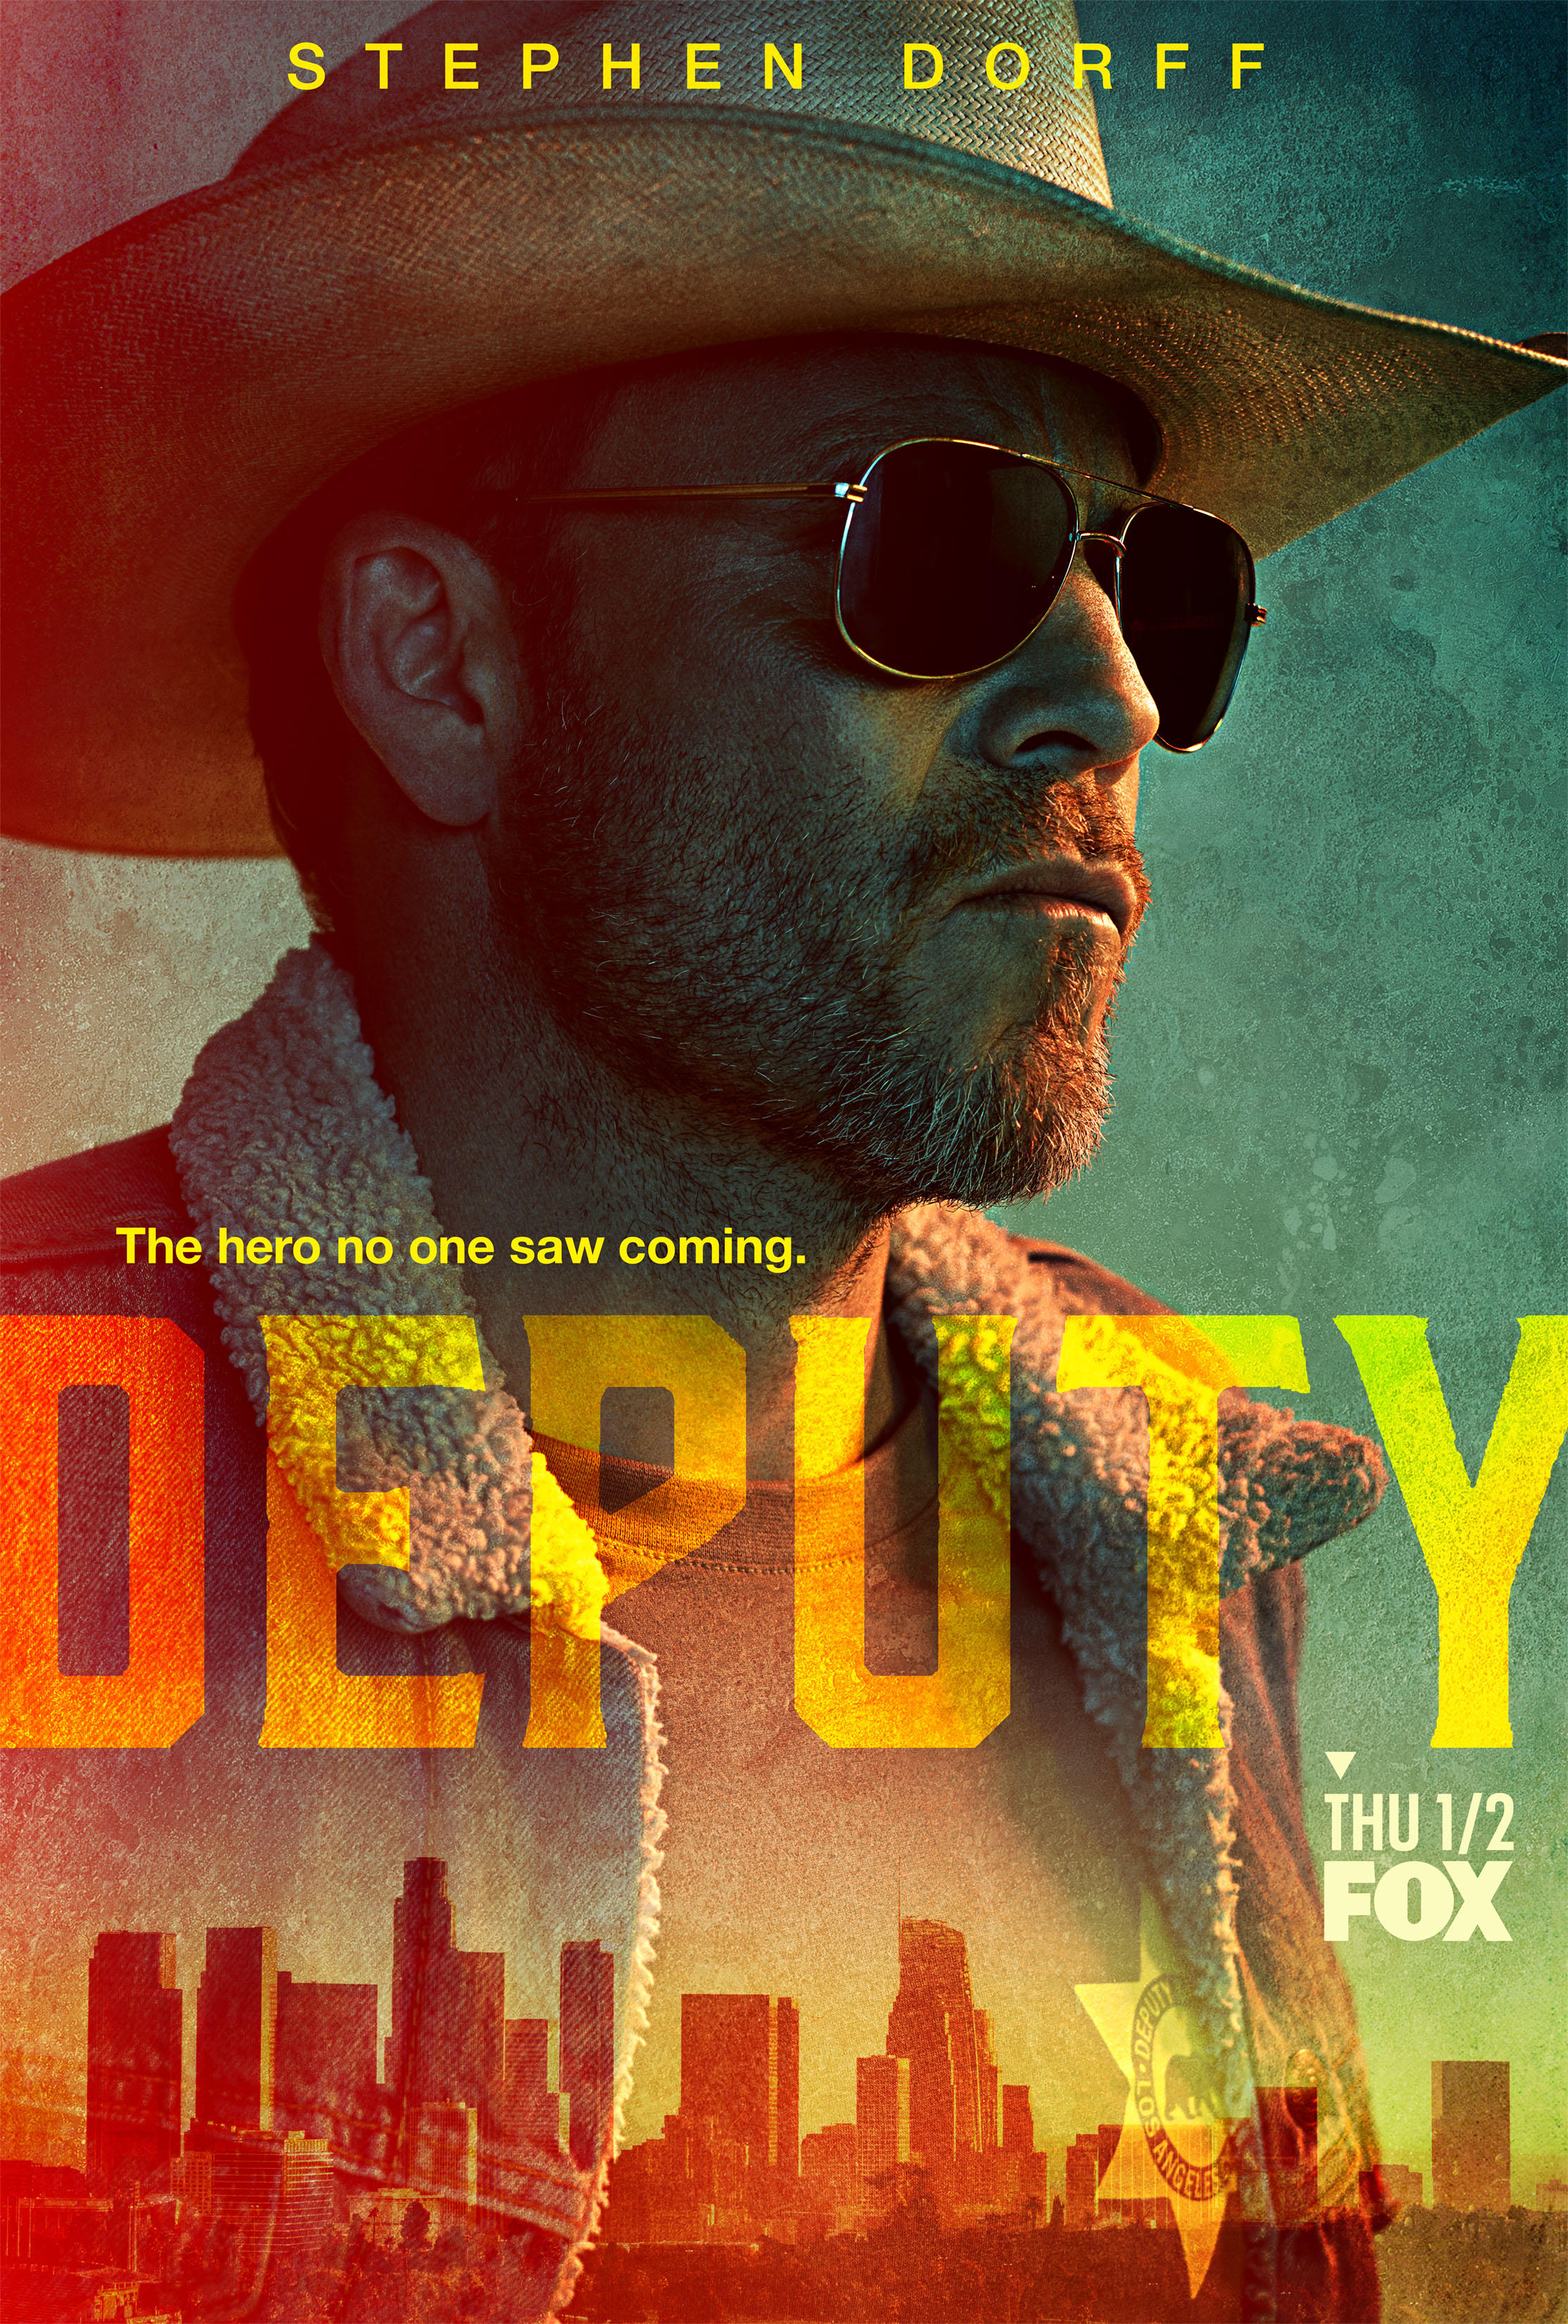 Poster for the show Deputy, as seen on Fox